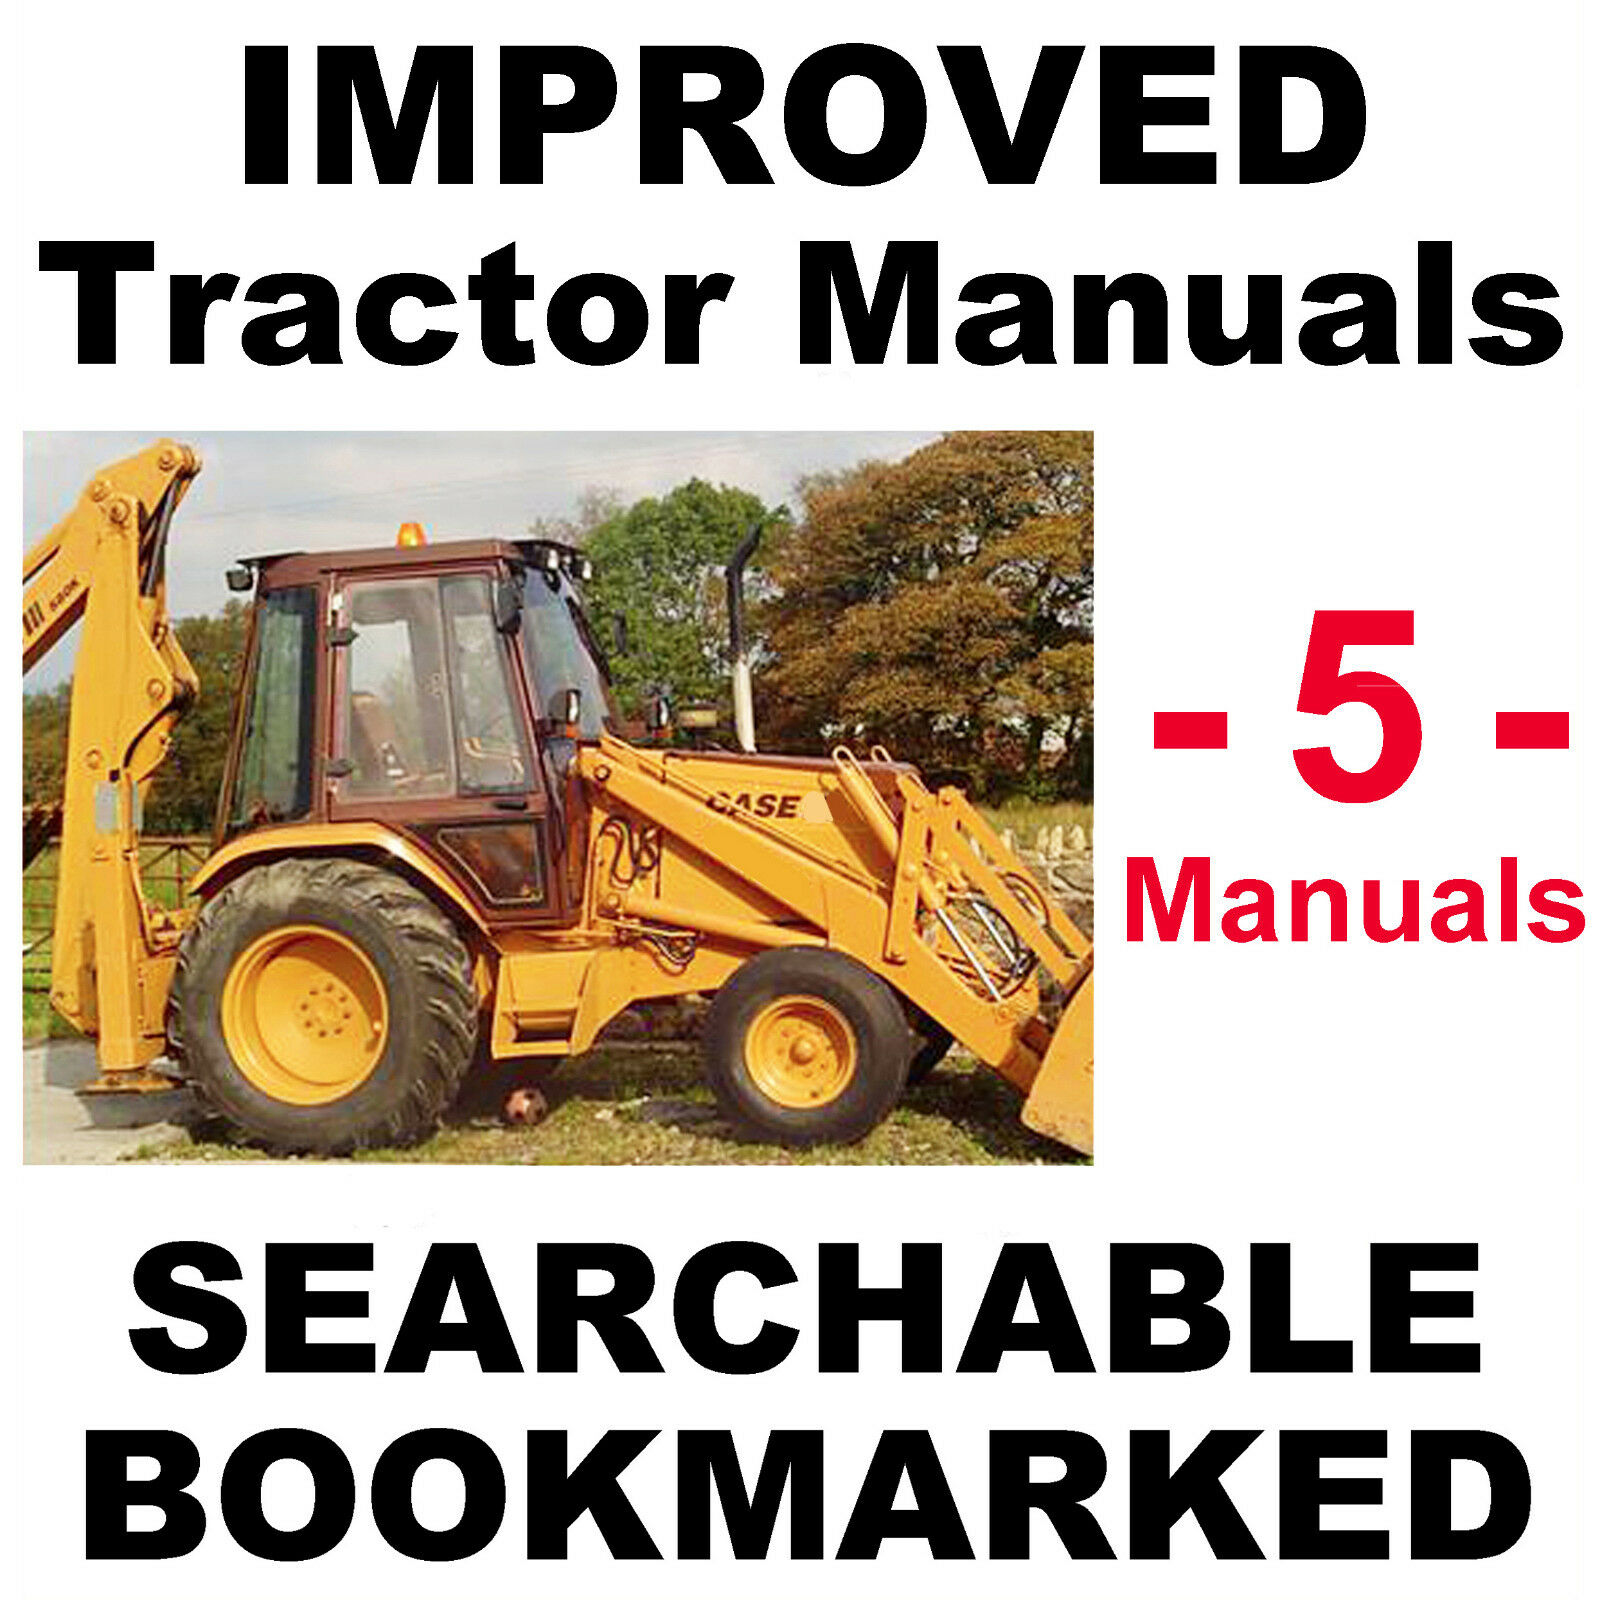 Case 580 Super K 580SK Tractor Backhoe SERVICE OWNER PARTS MANUAL -5-  MANUALS CD 1 of 12FREE Shipping Case 580 ...